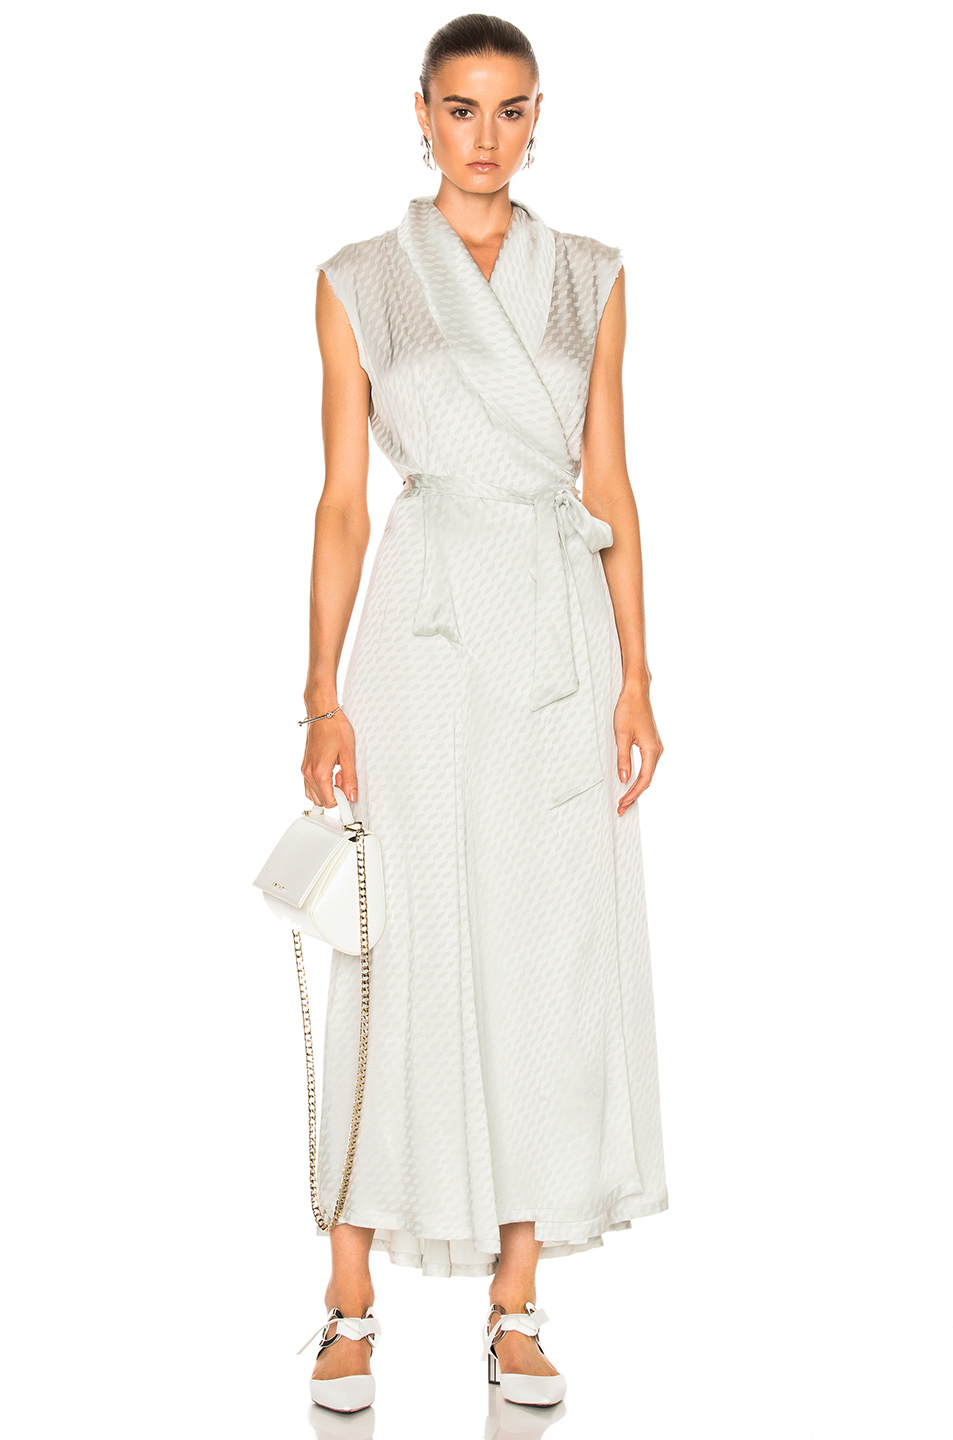 Photo of Maison Margiela Wrap Dress in Abstract,Gray,Metallics online sales